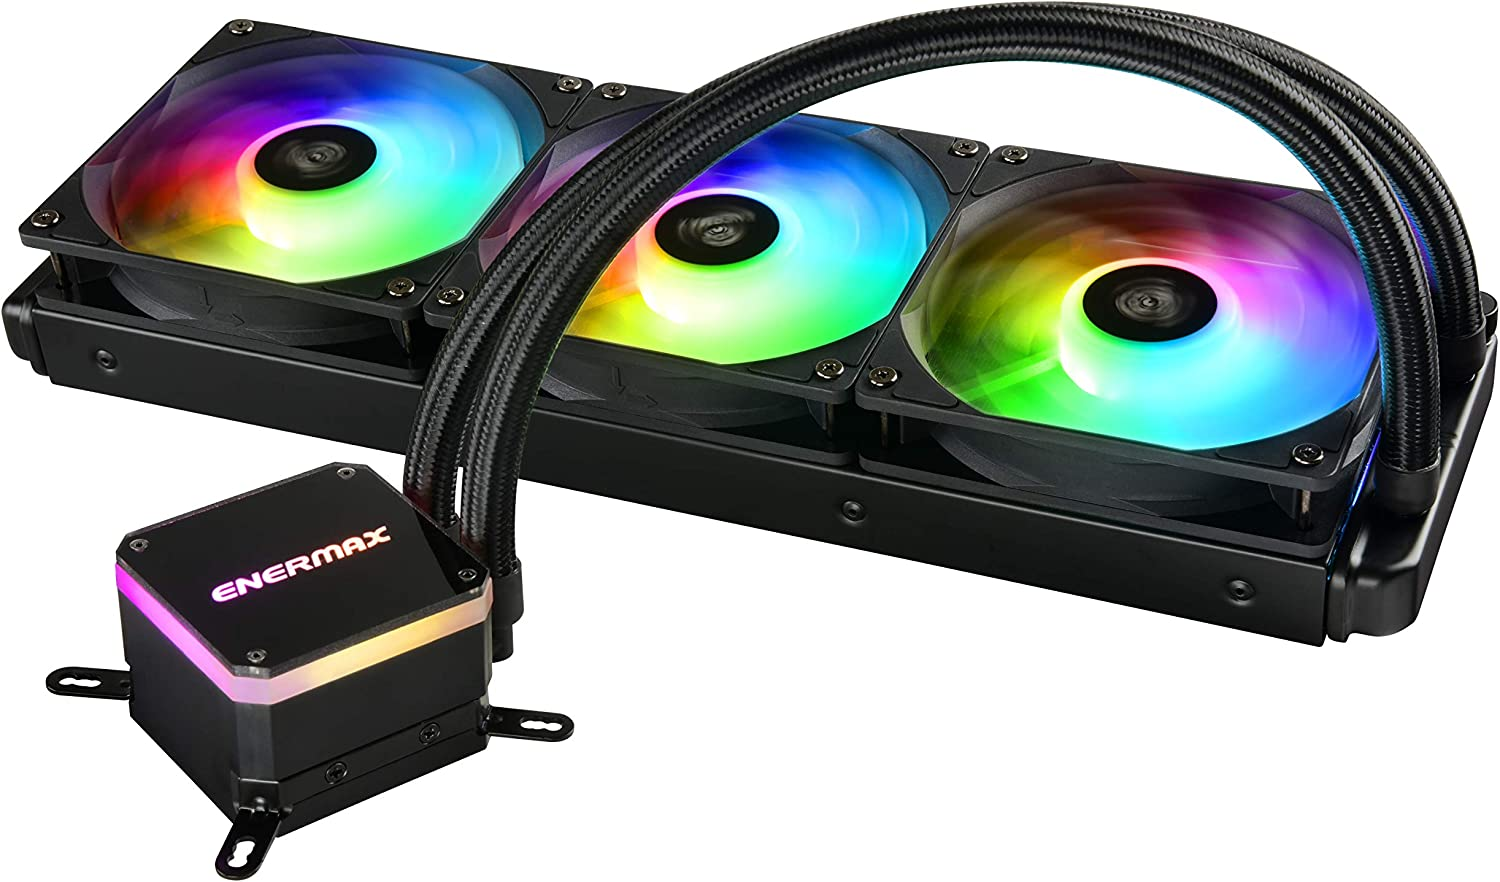 Enermax Liqmax III Addressable RGB 360 All-in-One CPU Liquid Cooler Dual Chamber Intel/AMD AM4 Support AIO ARGB LED Cooling 300W+ TDP; ELC-LMT360-ARGB